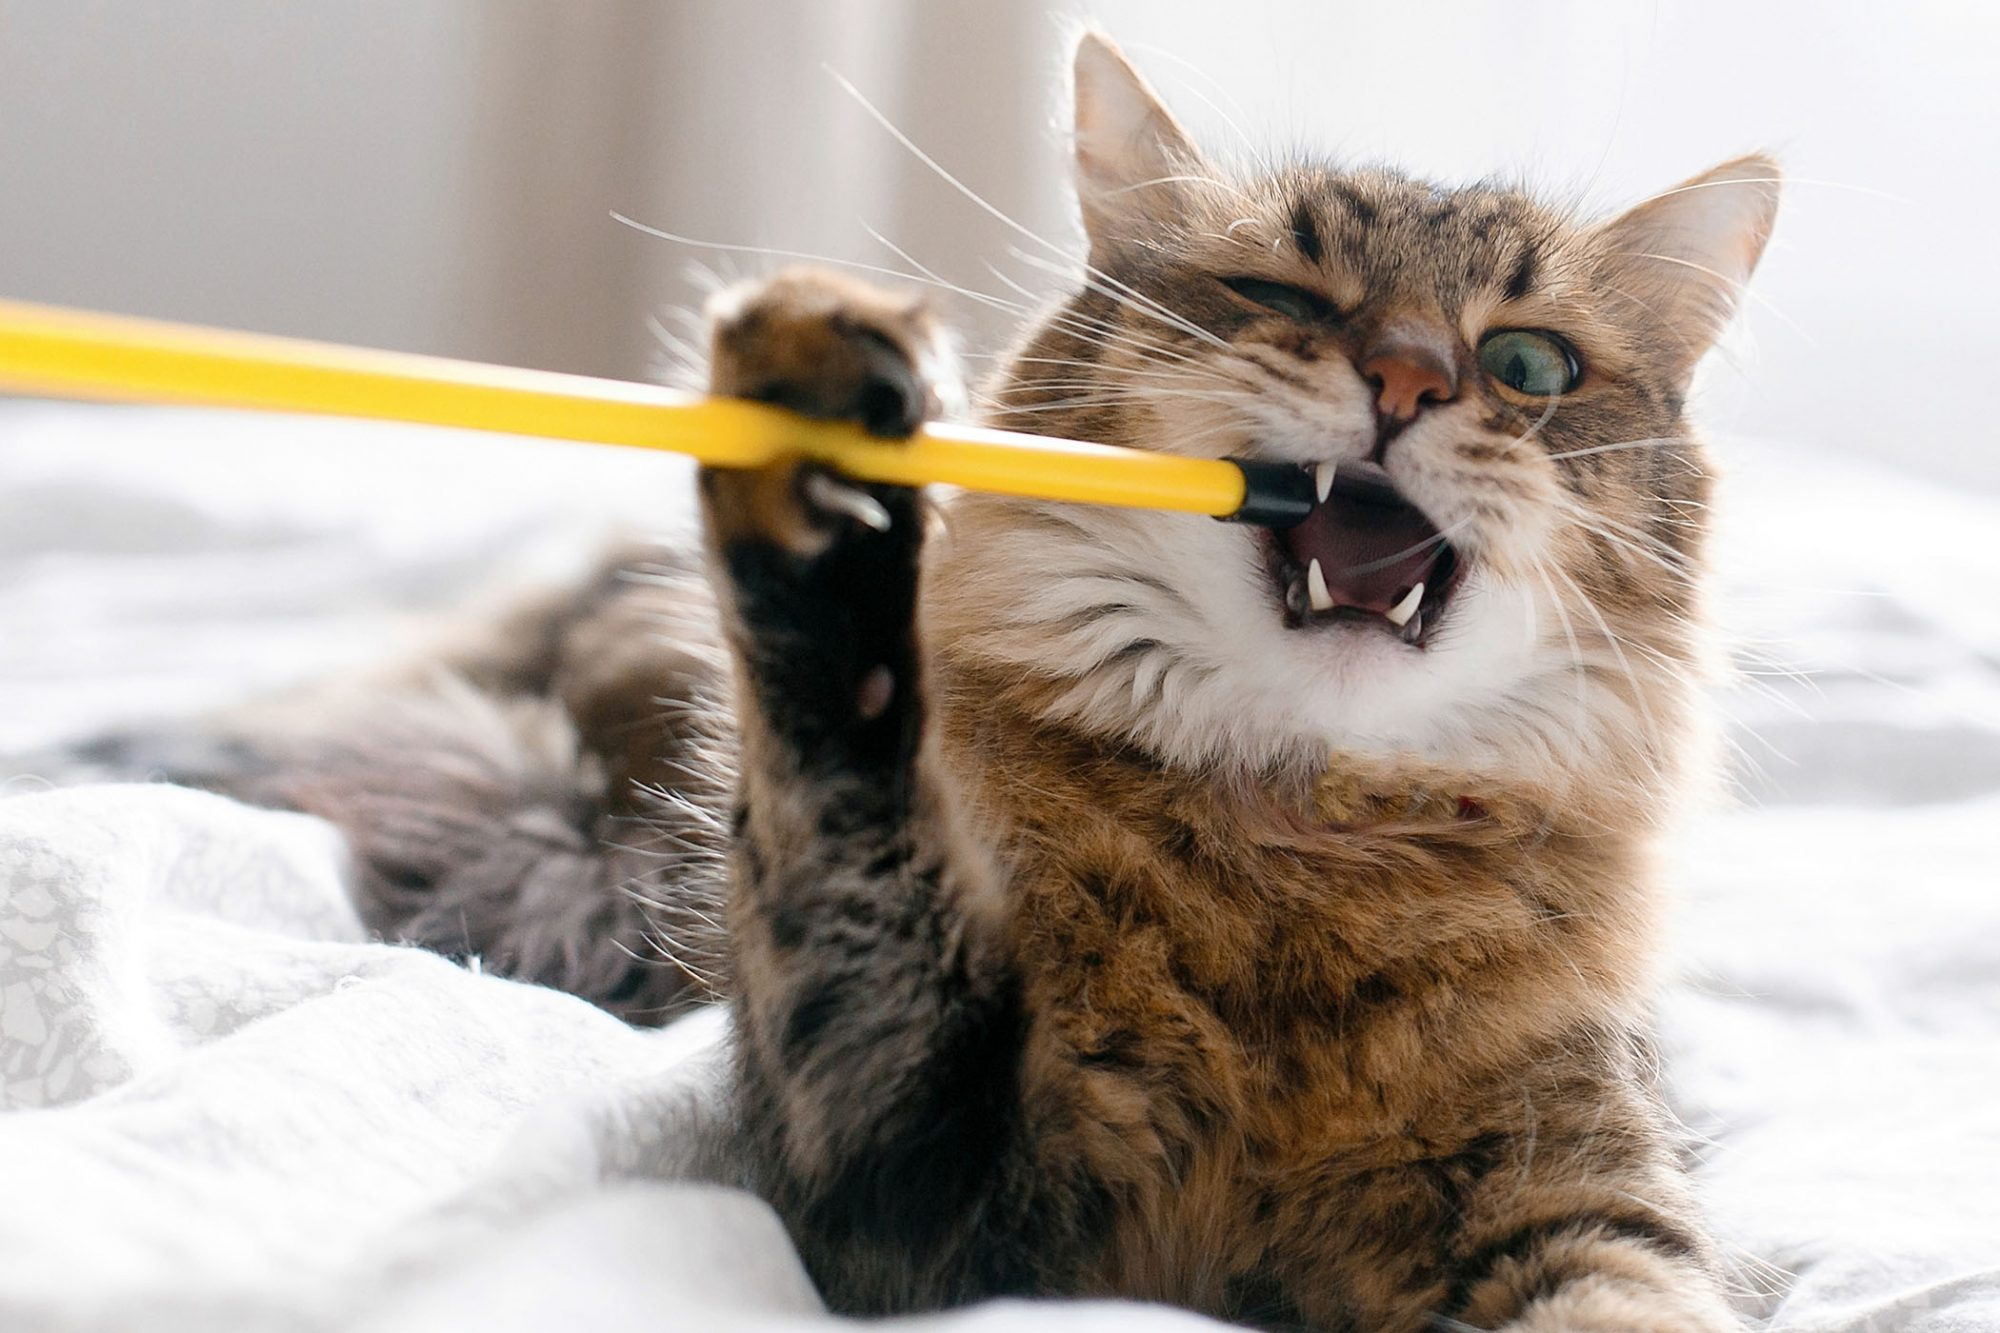 longhaired cat eating plastic stick